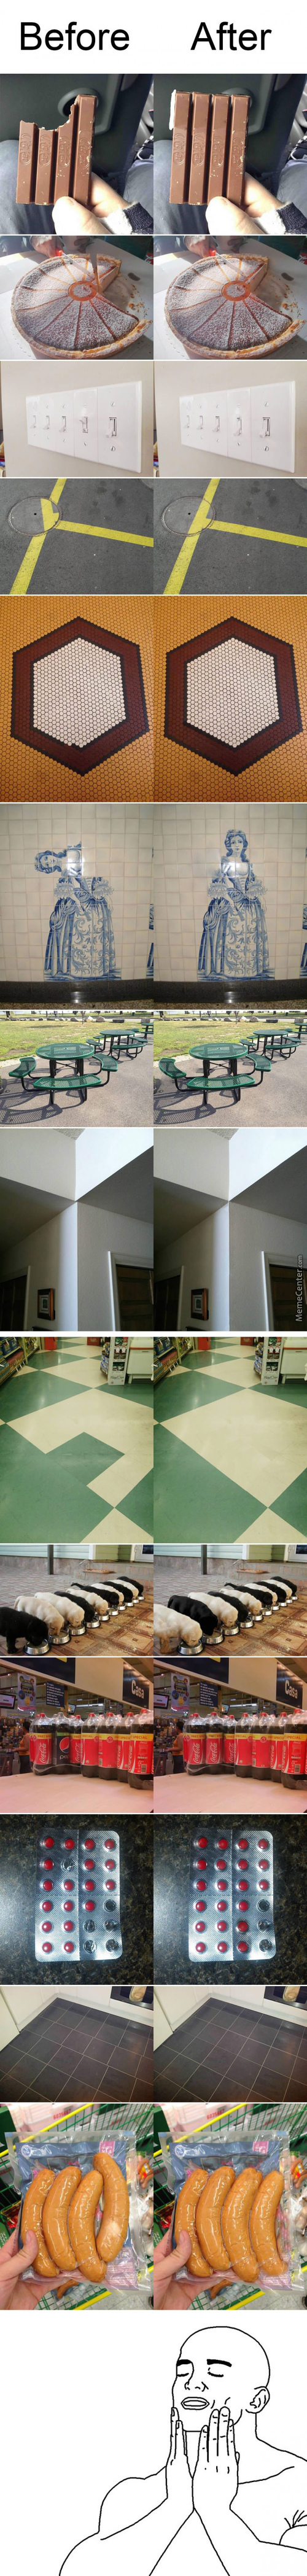 Fixing Ocd Inducing Images